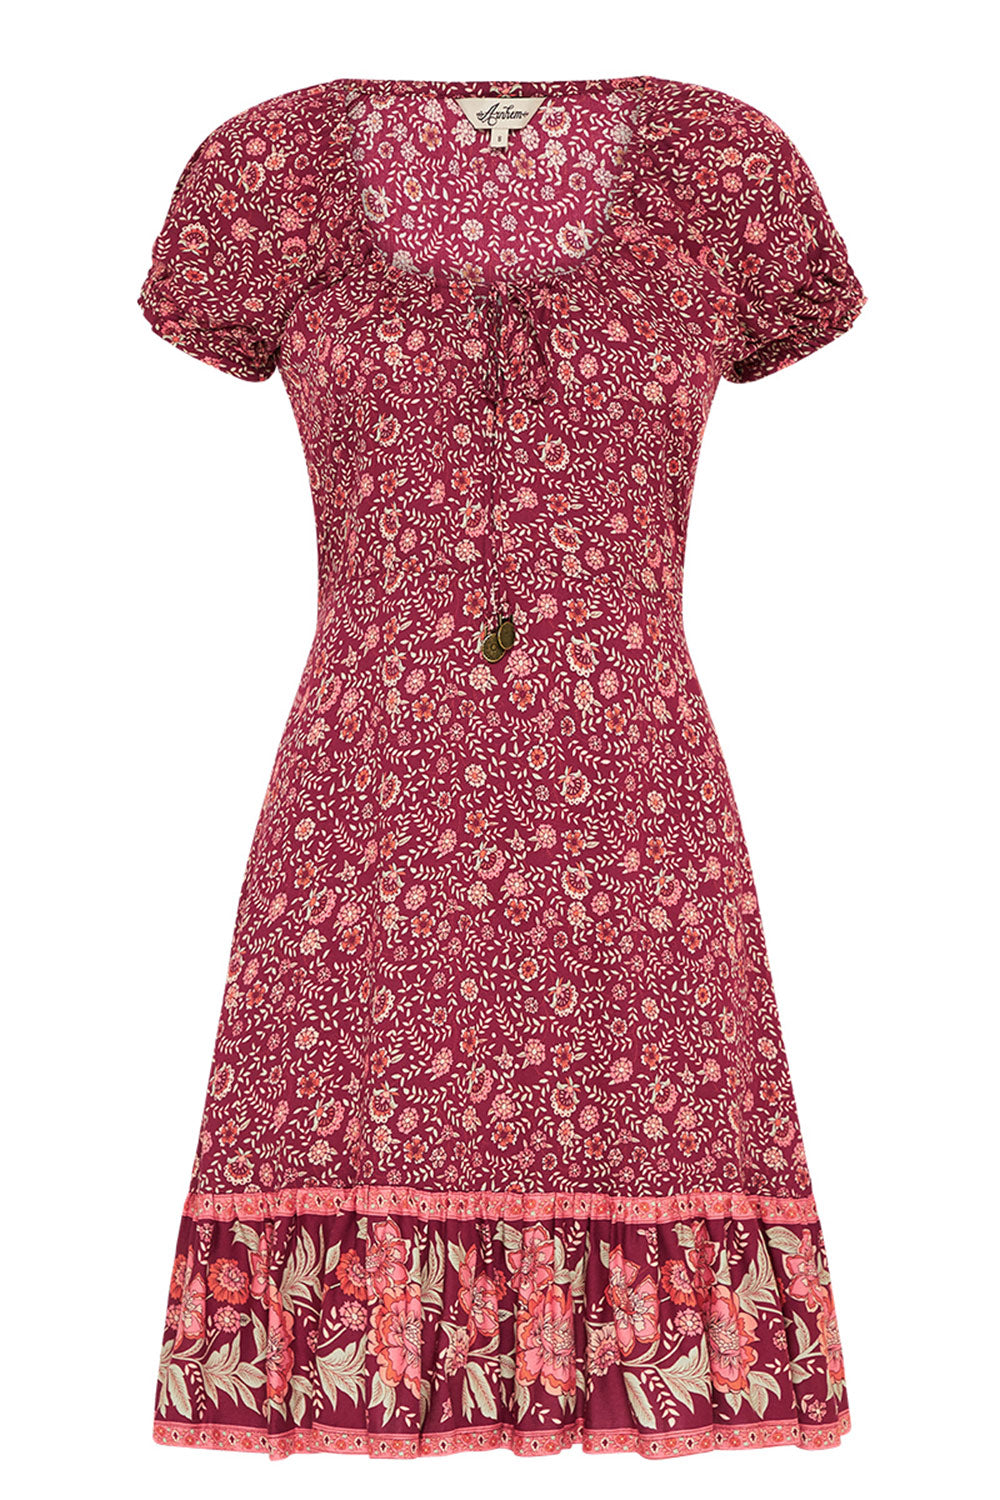 Fleetwood Mini Dress in Pomegranate